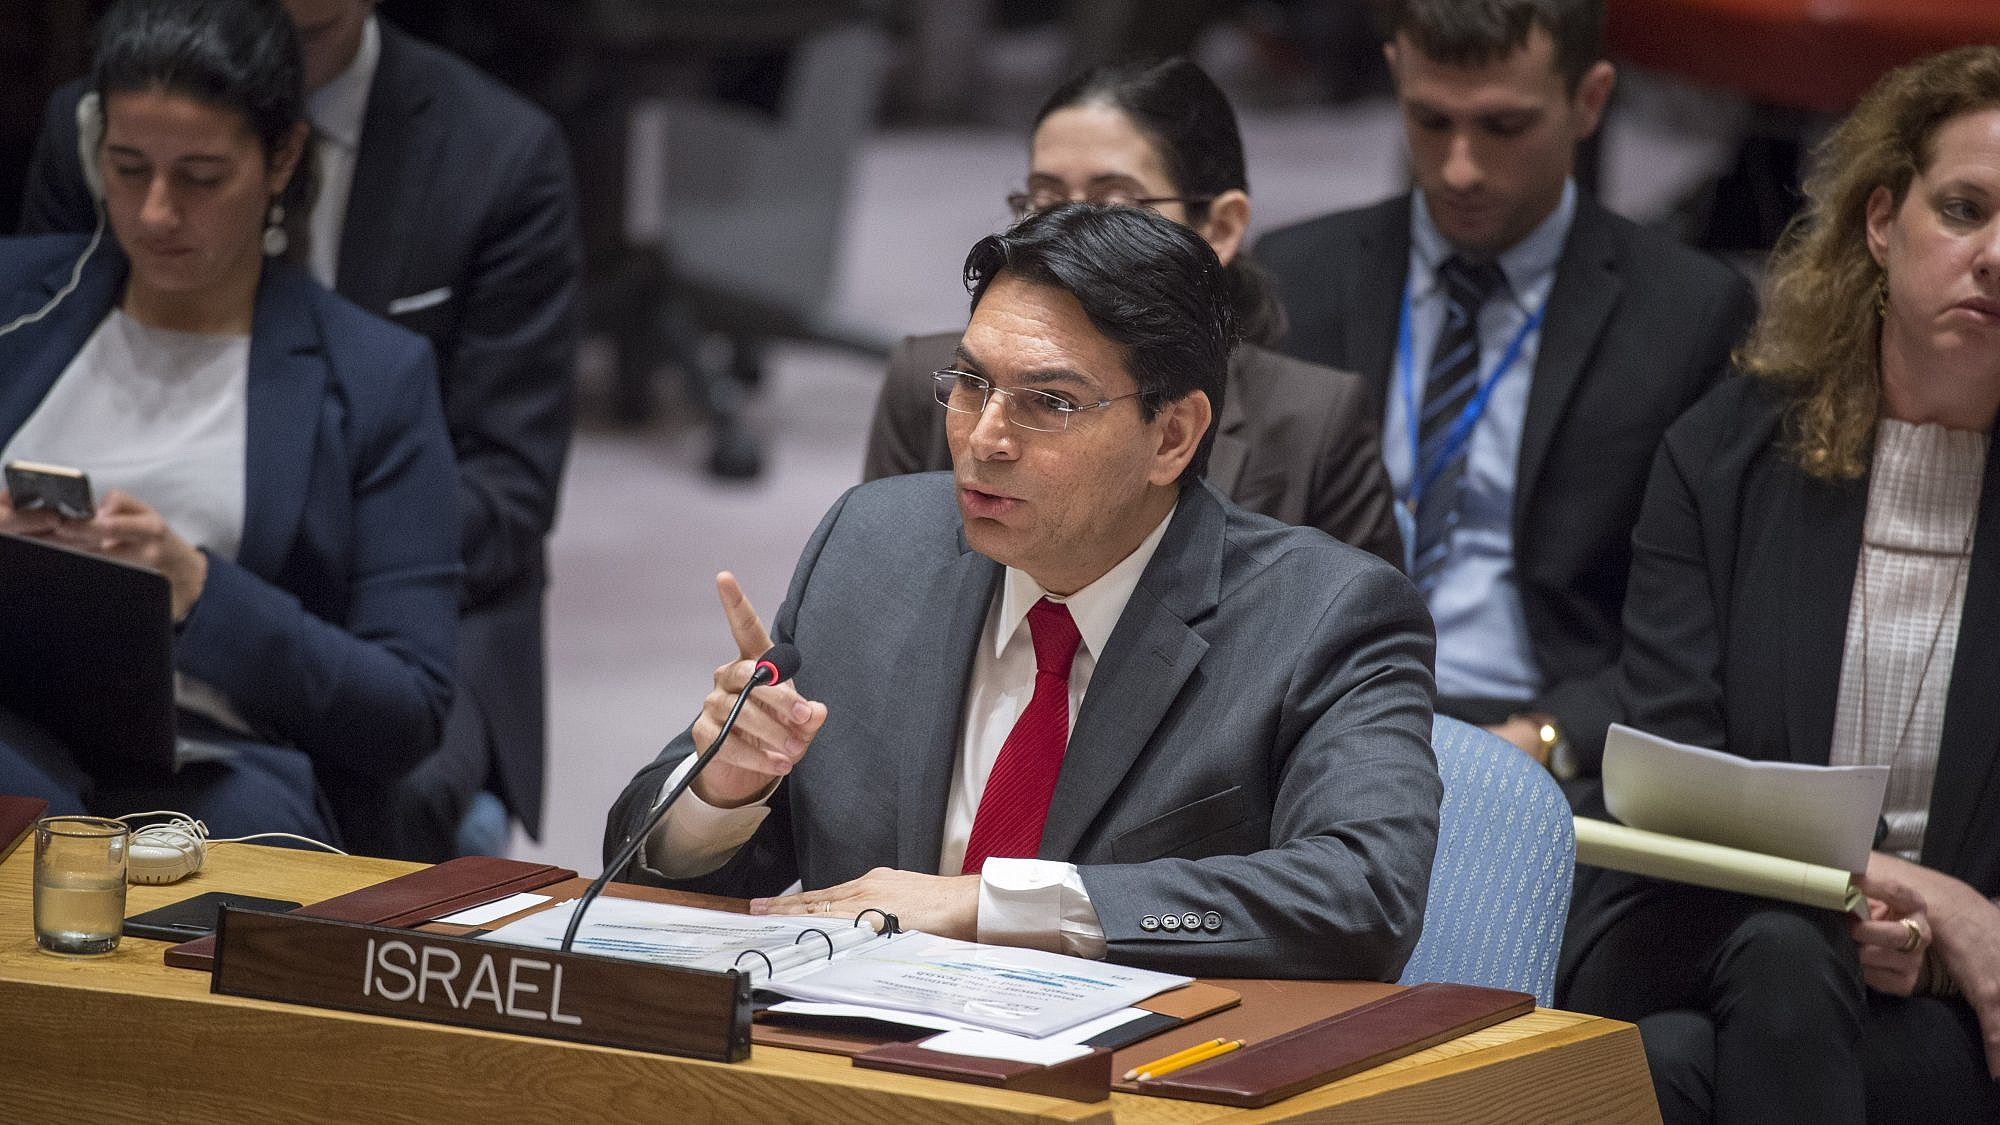 Israeli Ambassador to the United Nations Danny Danon addresses the U.N. Security Council meeting on the situation in the Mideast. Credit: U.N. Photo/Loey Felipe.